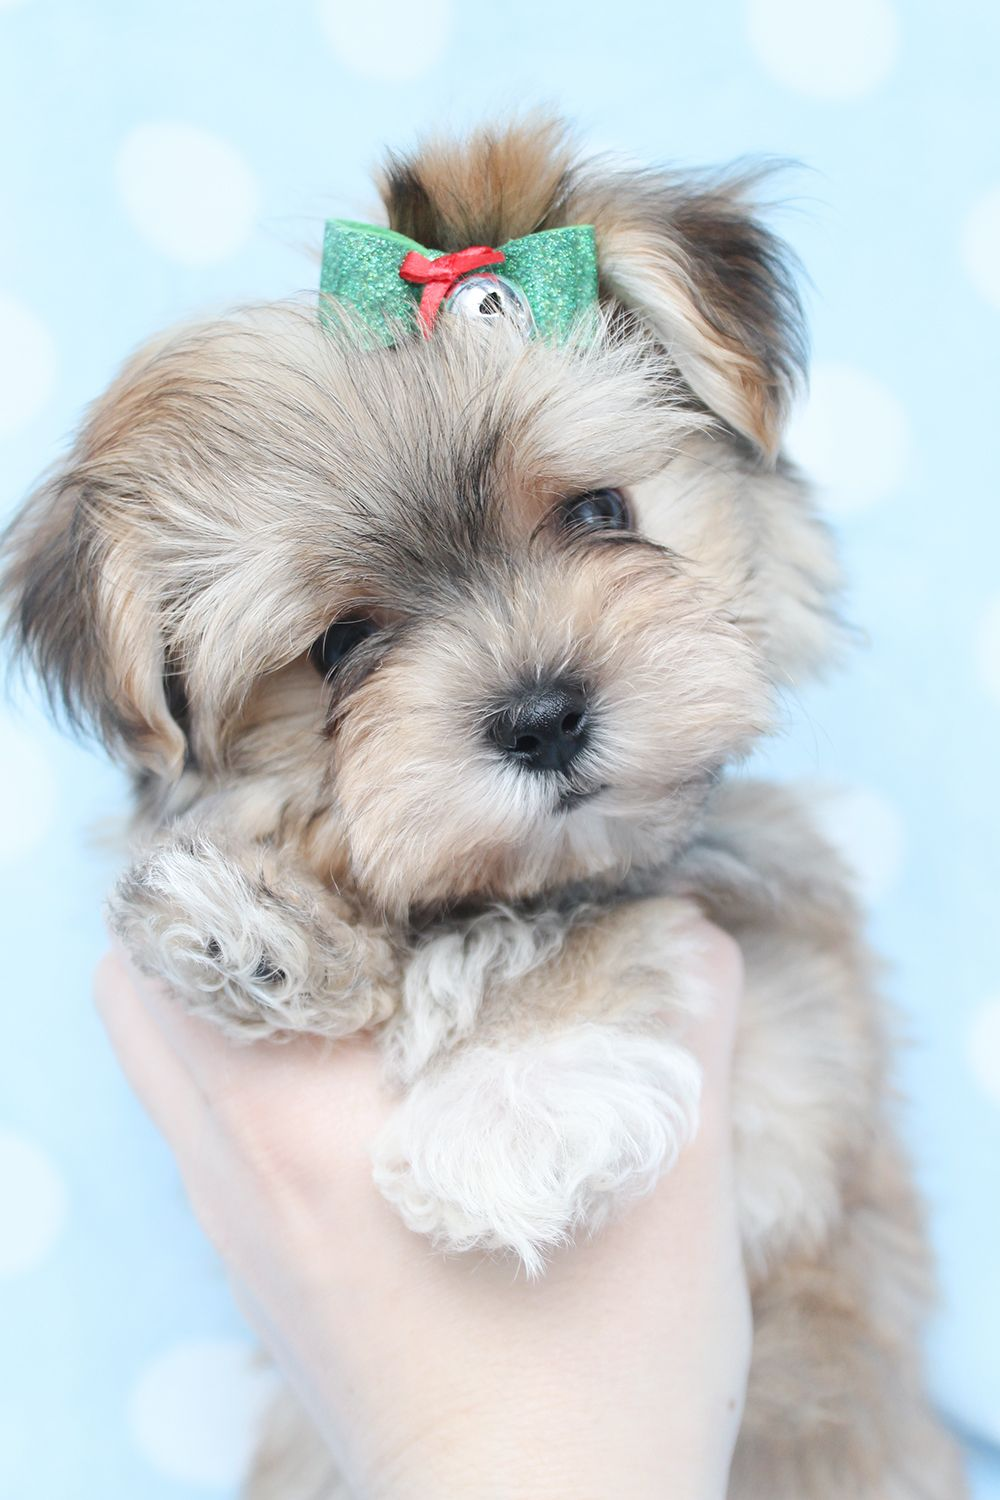 Yorkshire Terrier - Energetic and Affectionate | Pinterest | Morkie ...